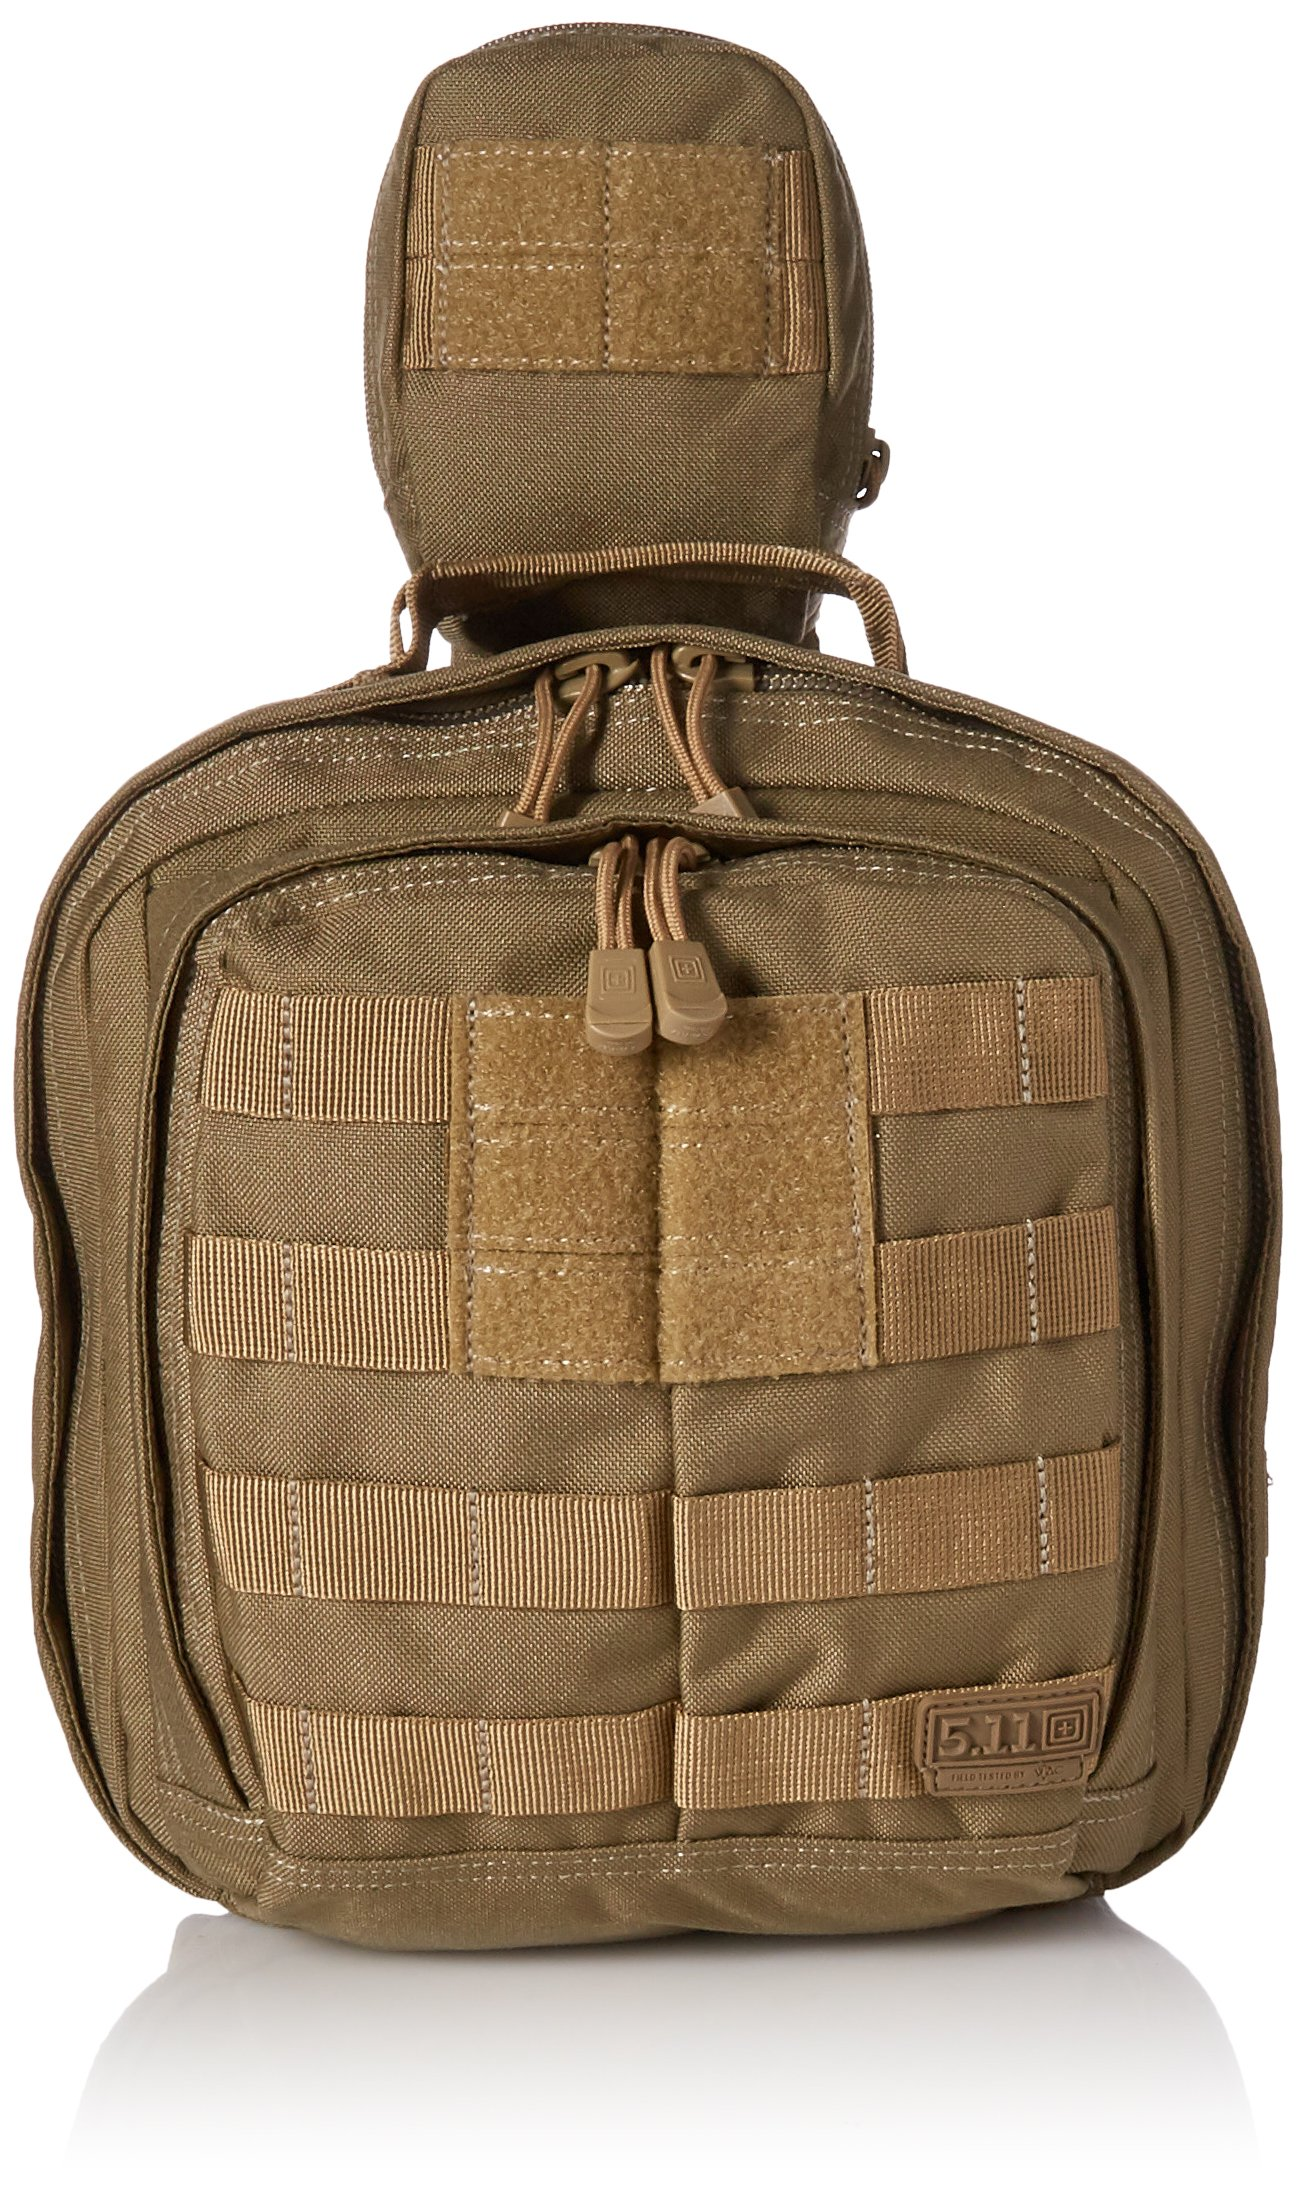 5.11 RUSH MOAB 6 Tactical Sling Pack Military Molle Backpack Bag, Style 56963, Sandstone by 5.11